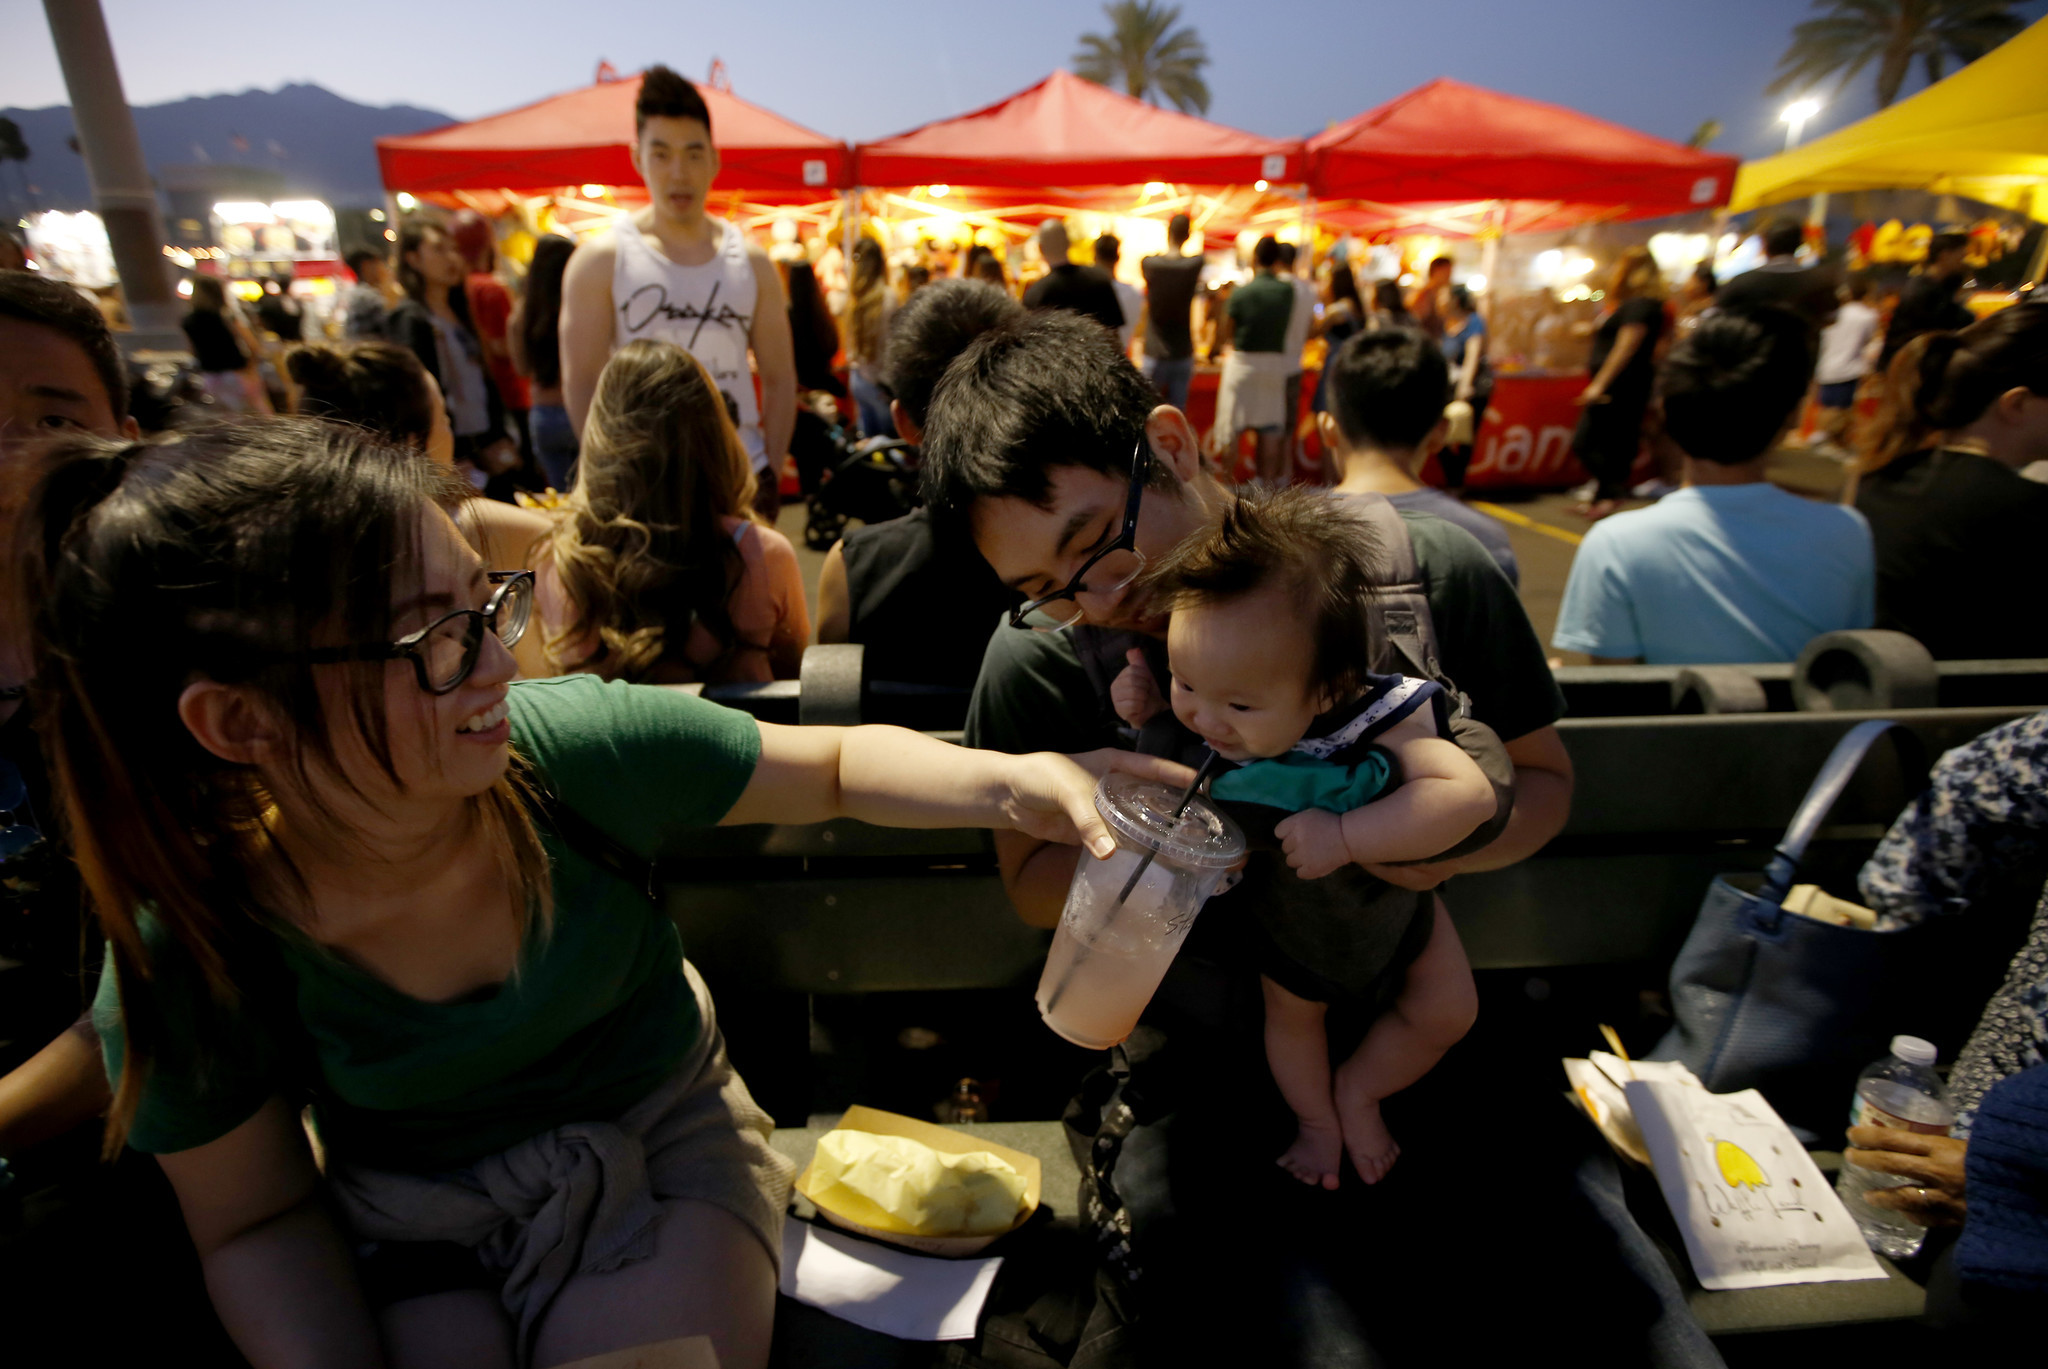 Linda Lee and Sam Man share a cold drink with their daughter, Olivia Man, 6 months, at a crowded 626 Night Market in Arcadia.